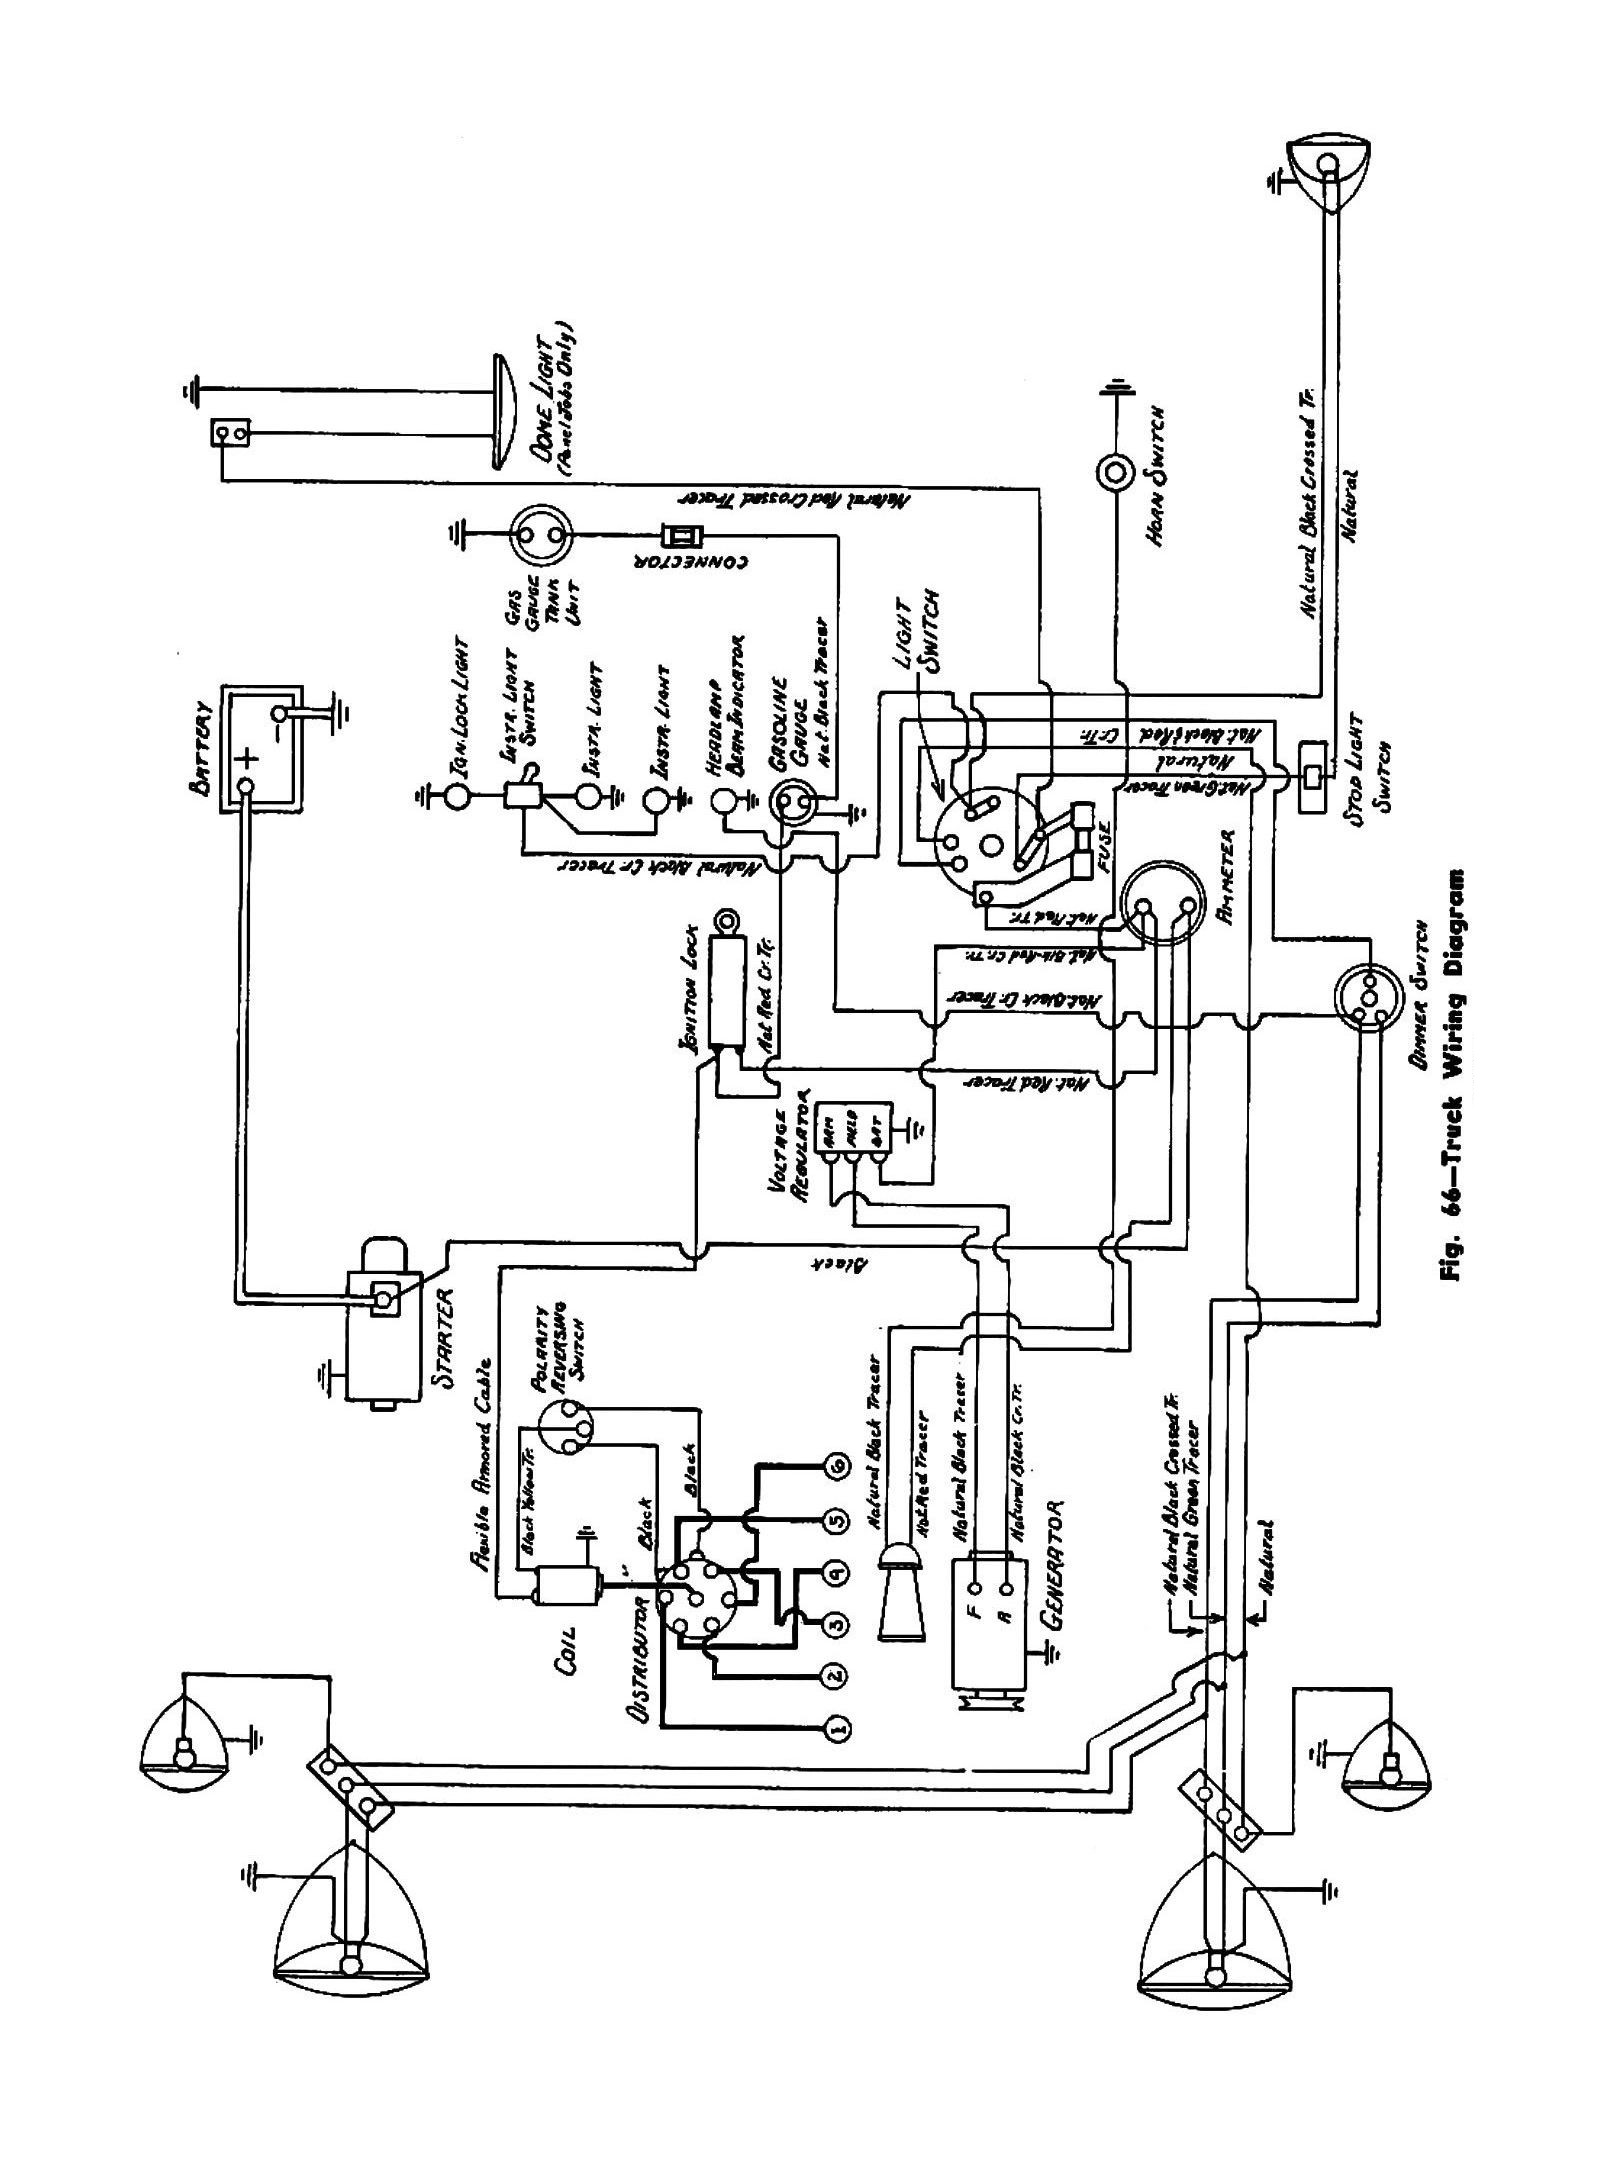 45truck truck wiring diagram tractor wiring diagrams \u2022 wiring diagram  at panicattacktreatment.co